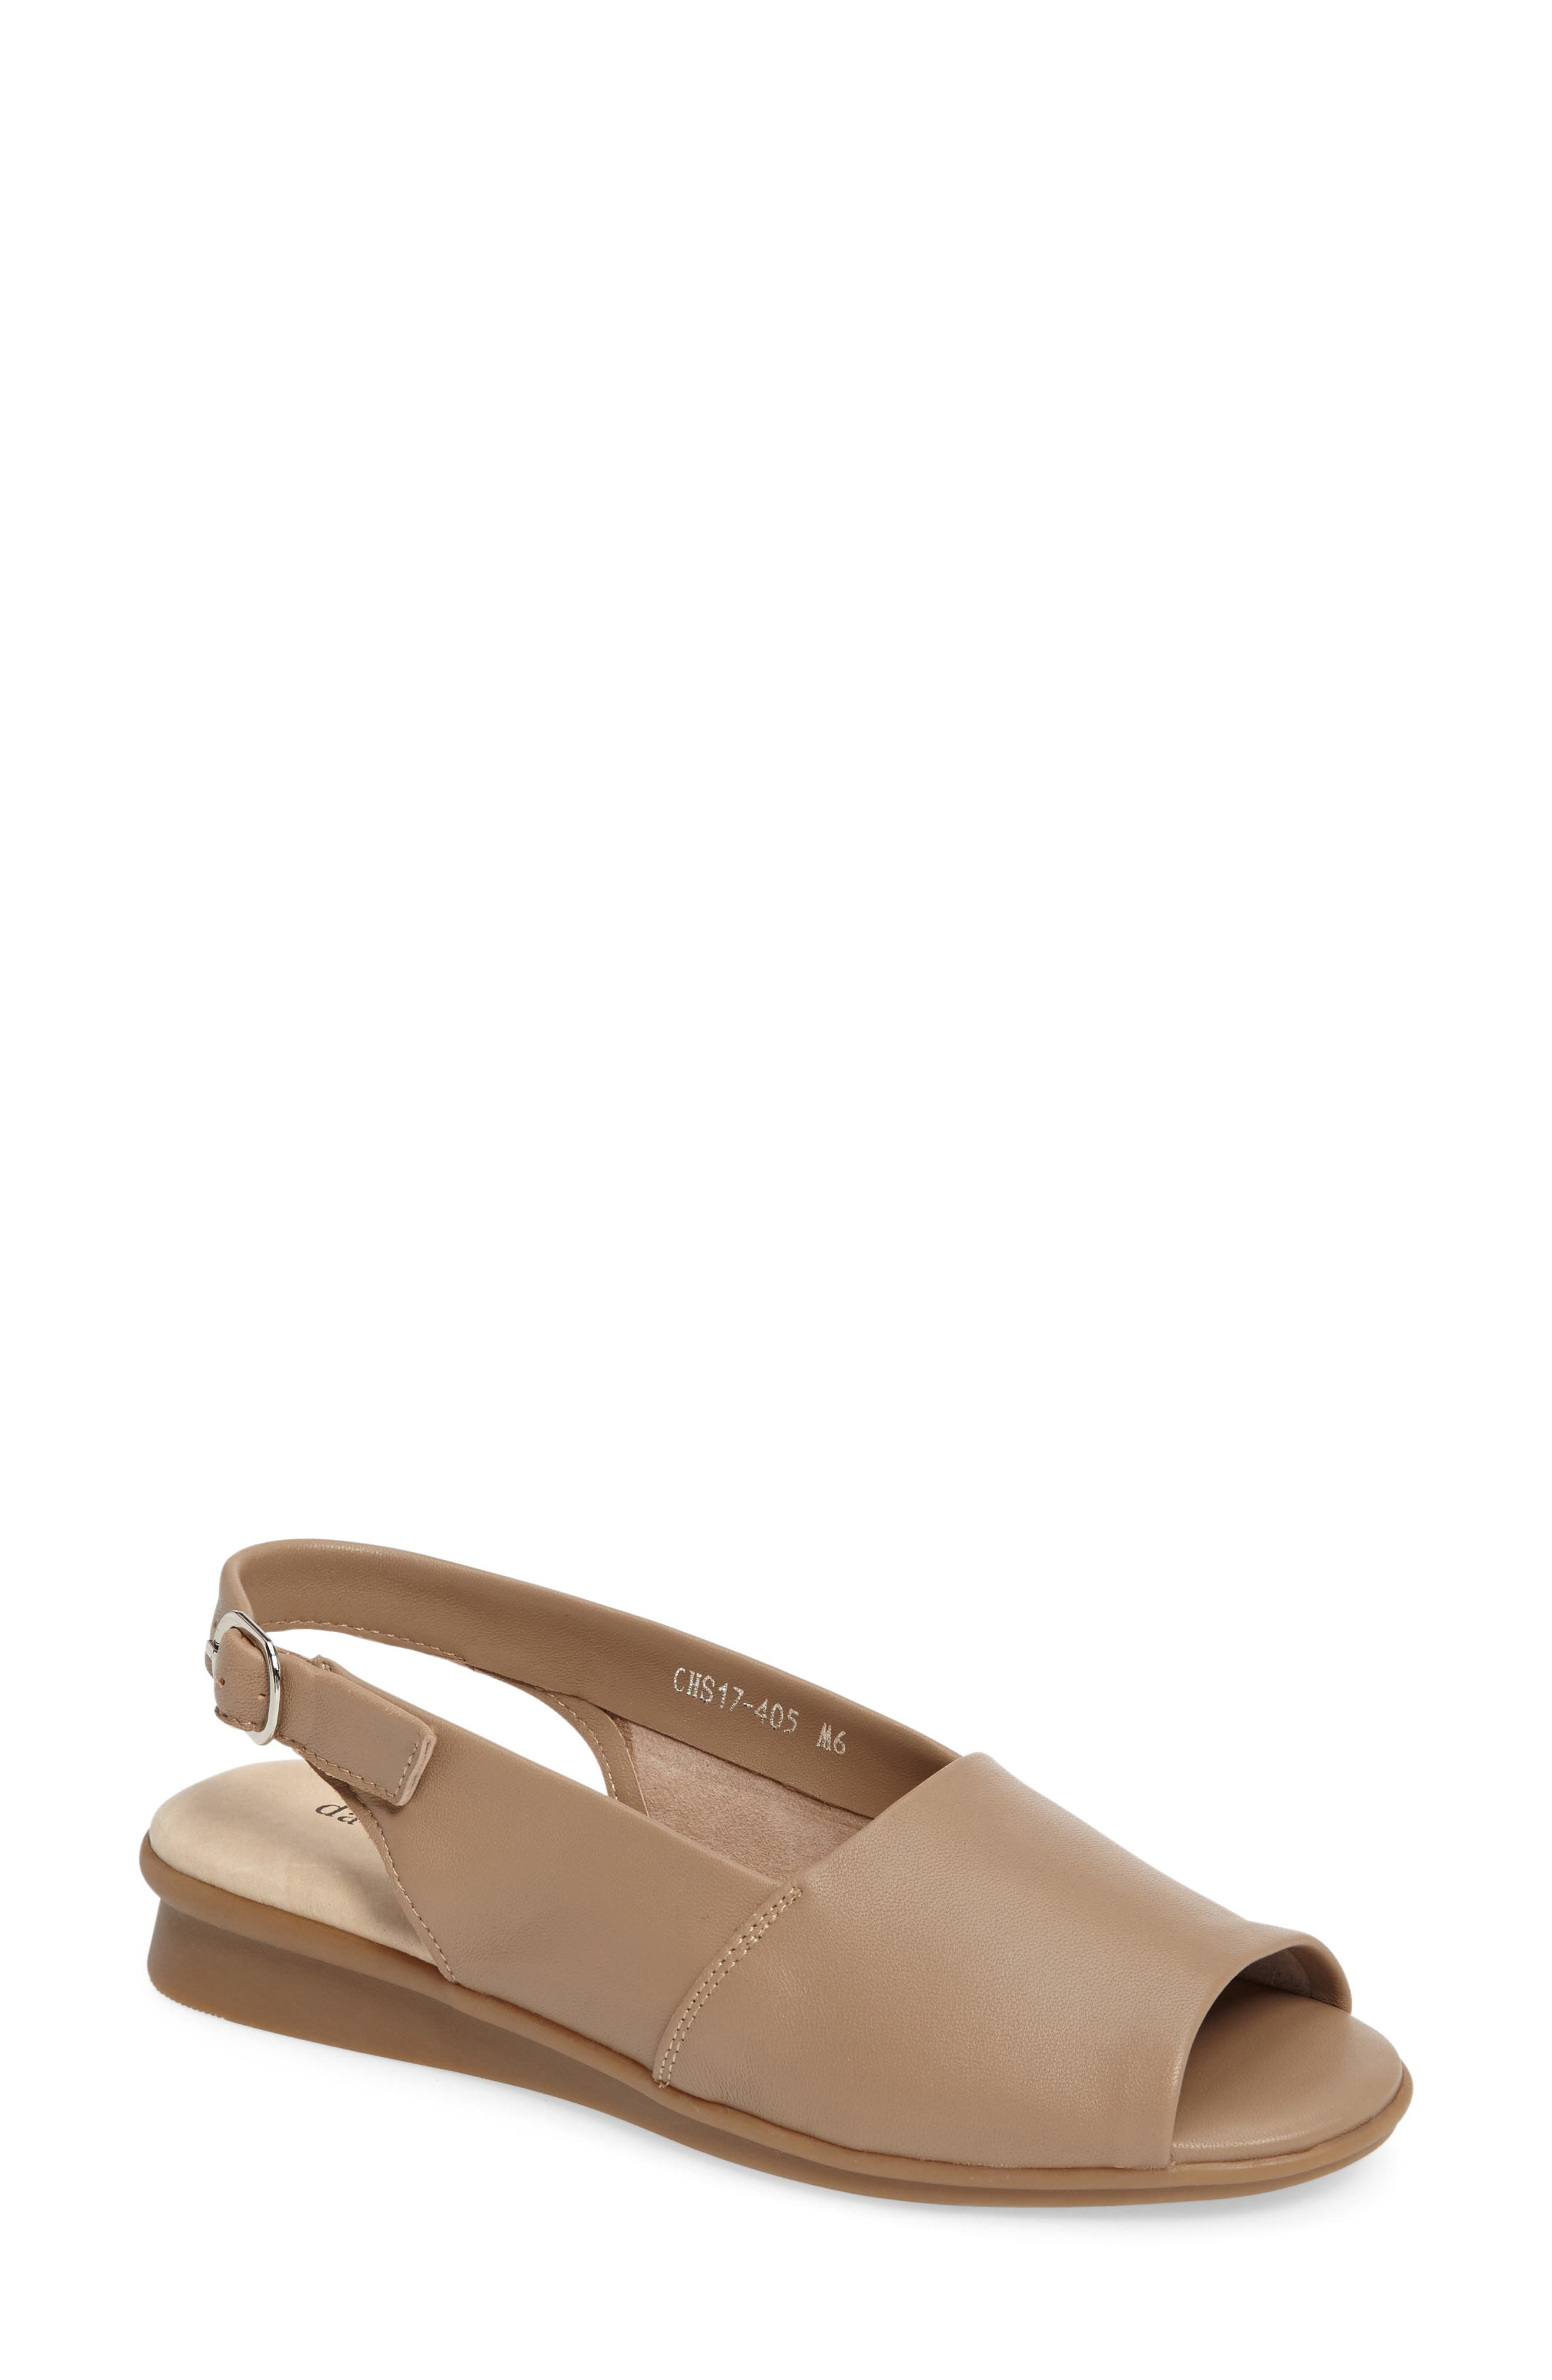 Norma Slingback Sandal,                             Main thumbnail 1, color,                             Camel Leather